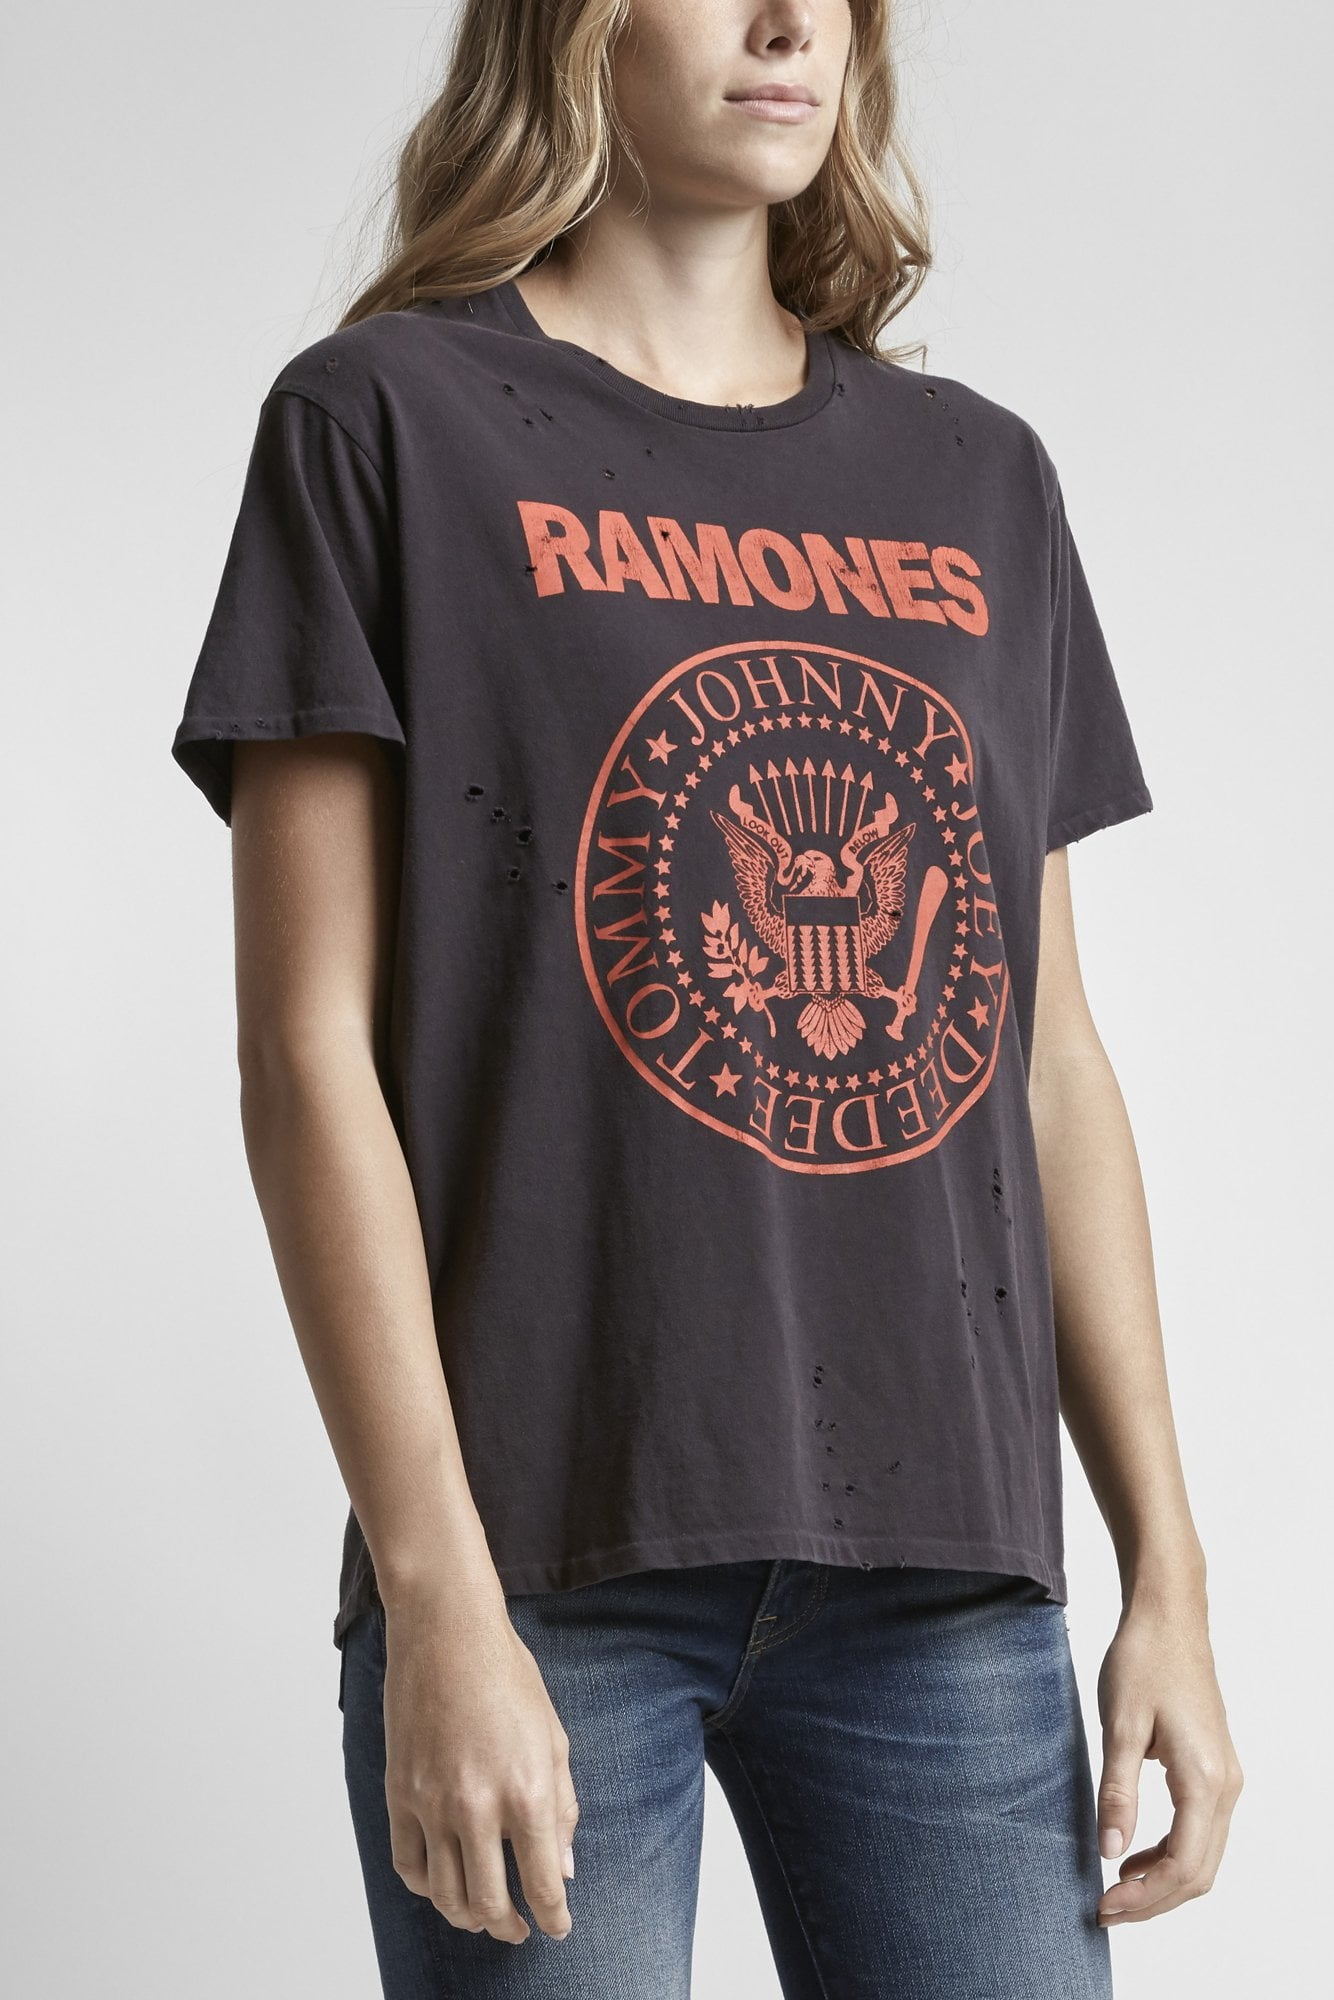 Ramones Boy T-Washed Black